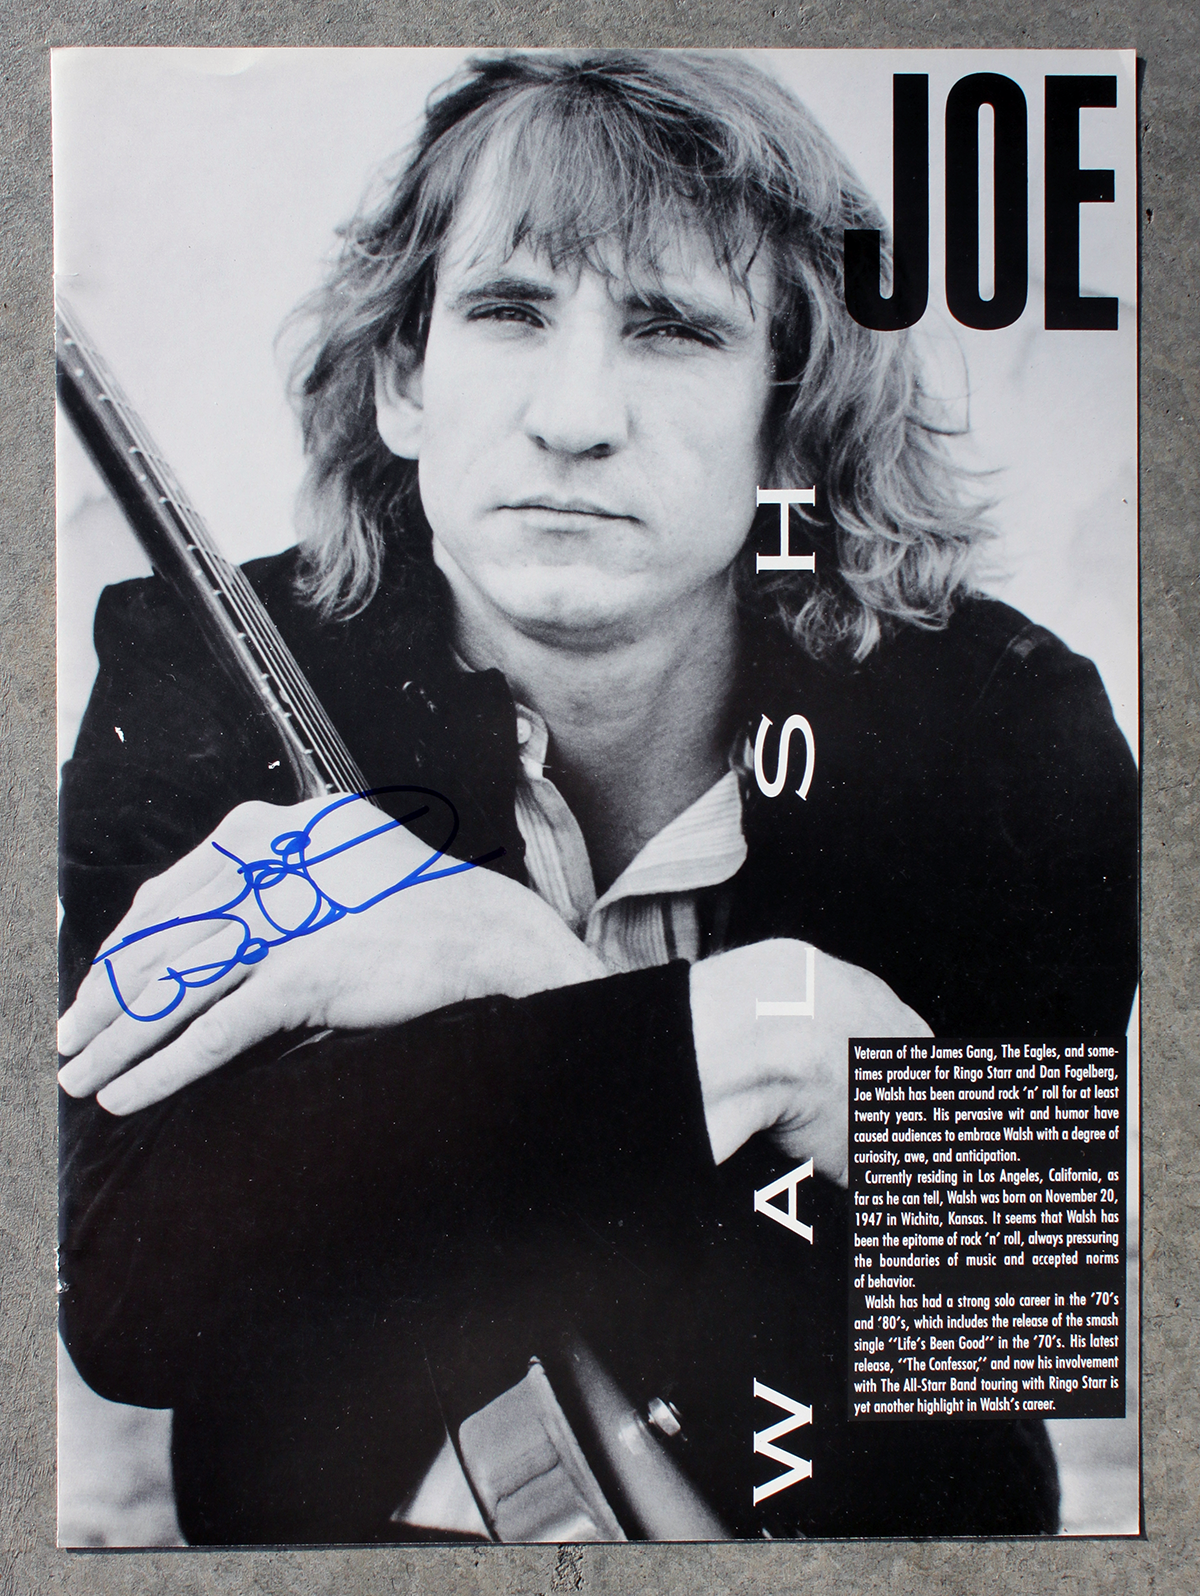 Joe Walsh photo #2